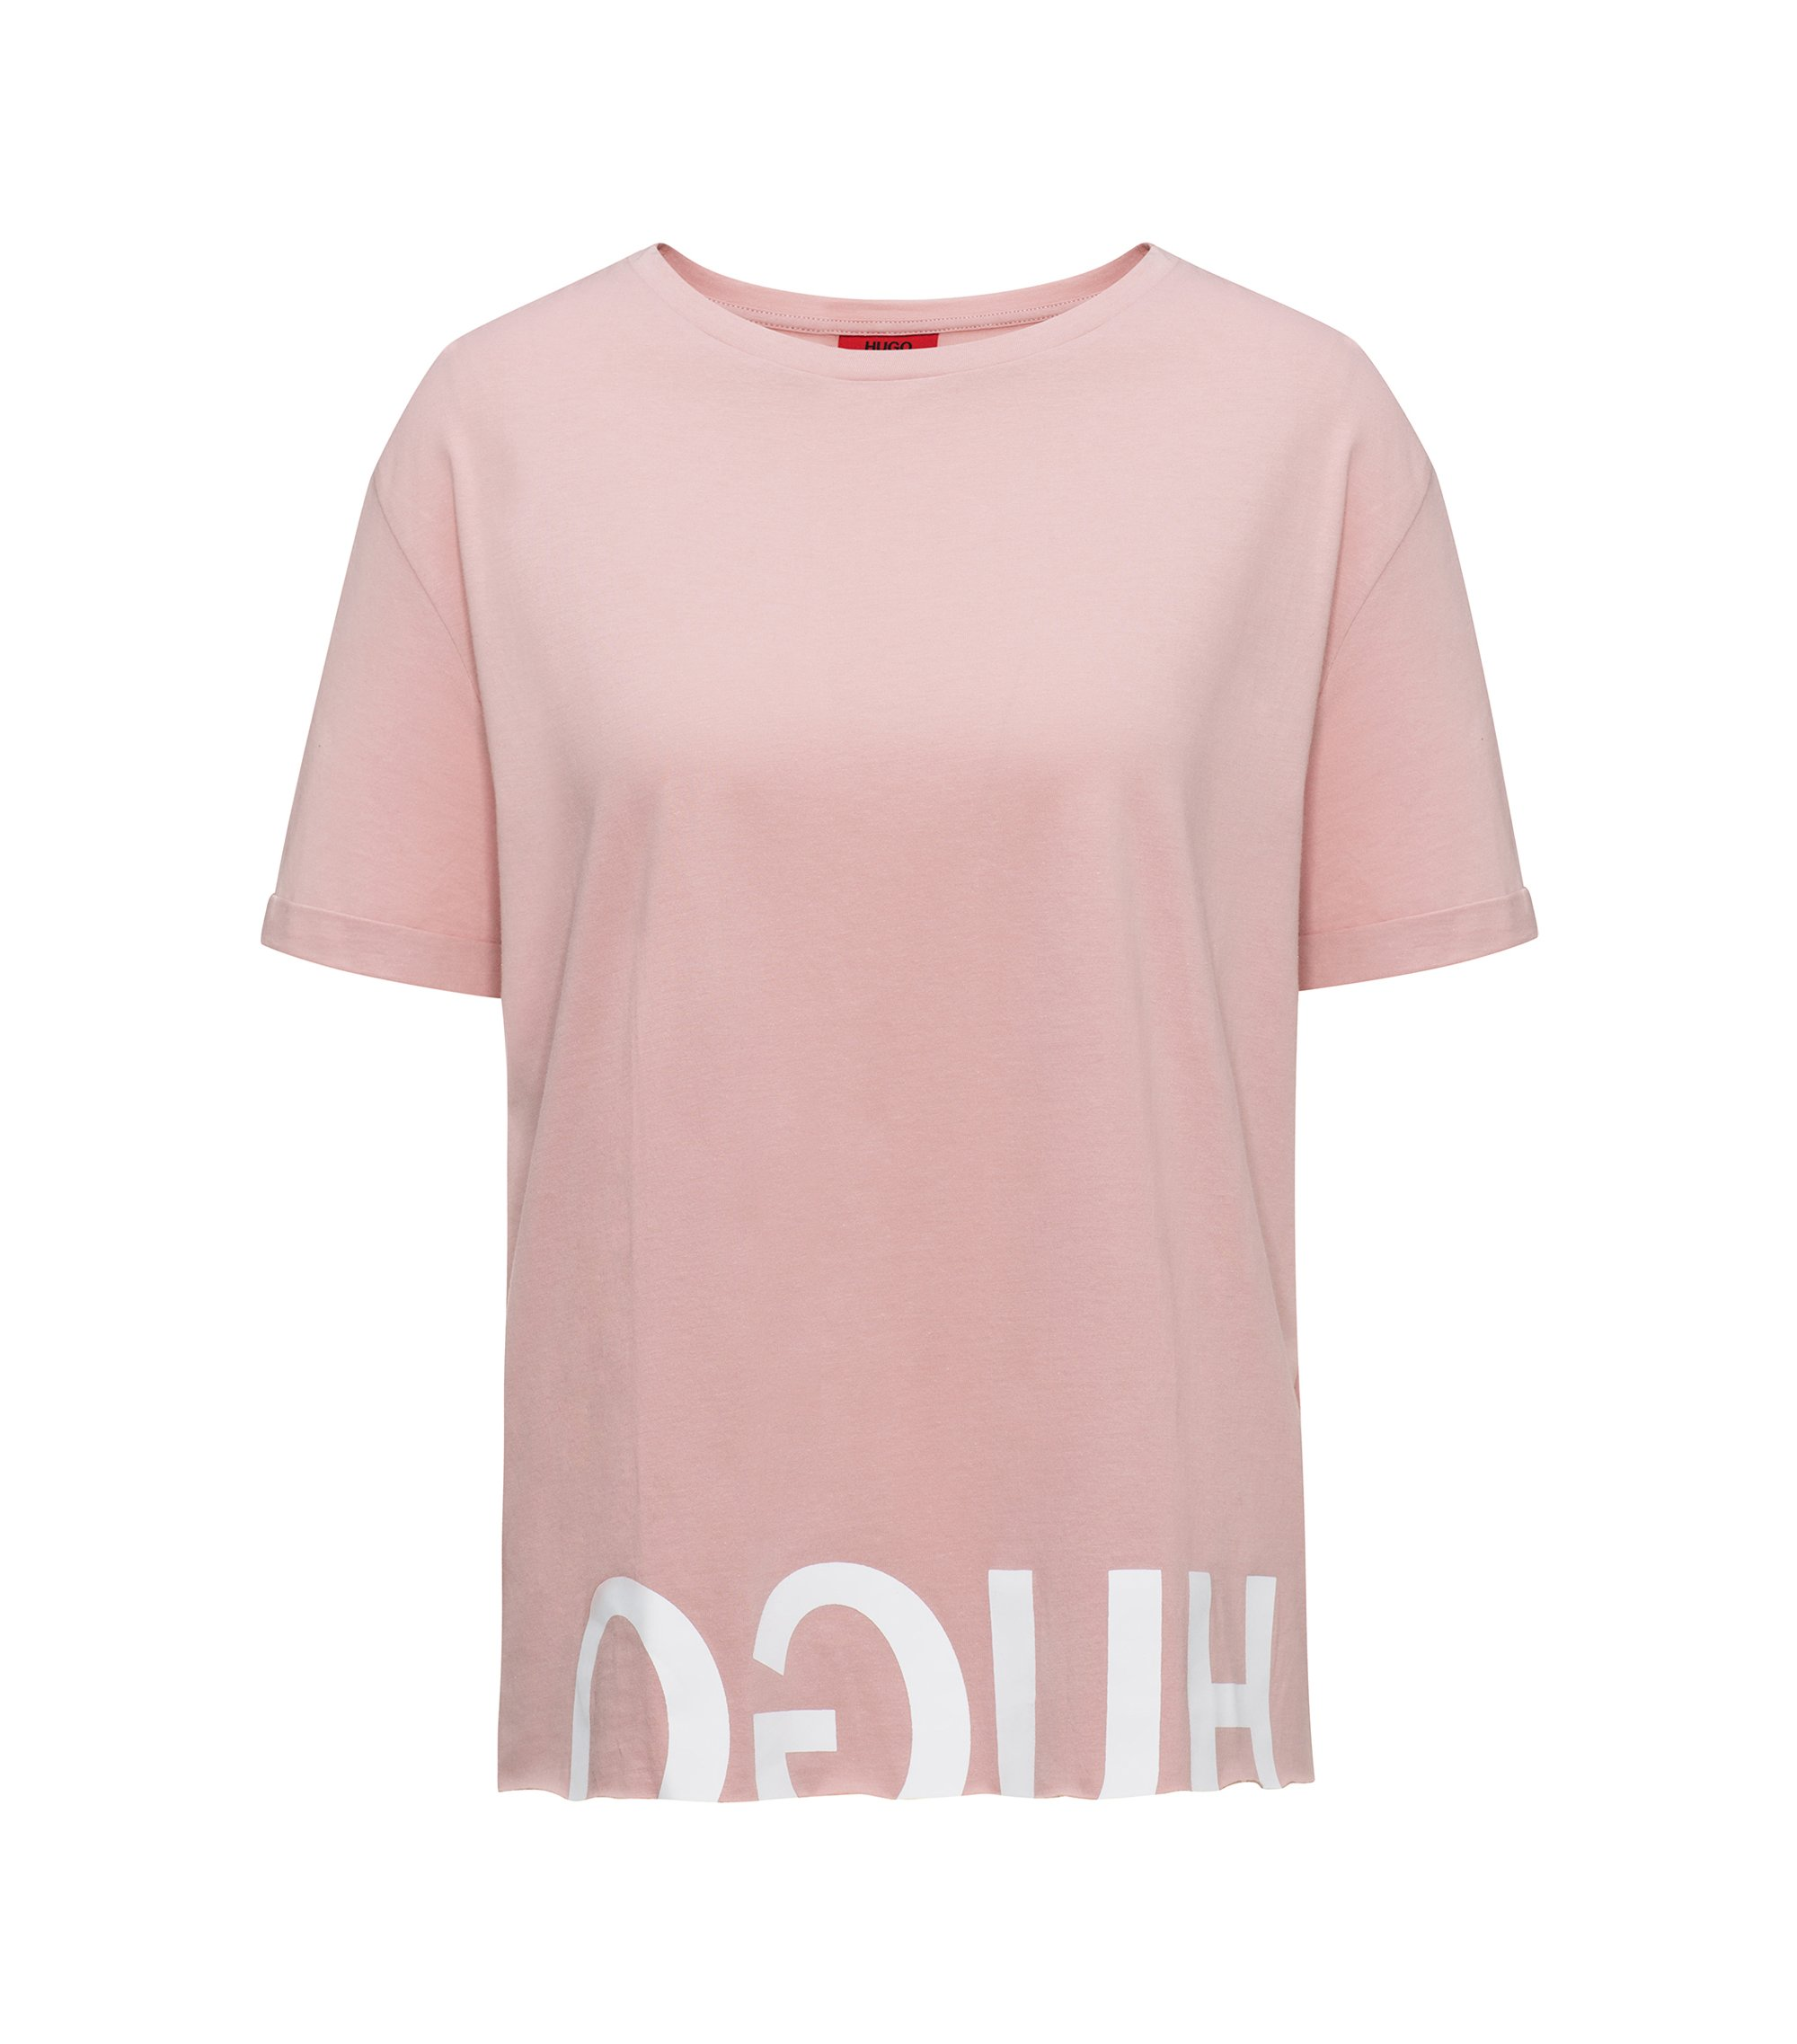 Reverse logo cotton T-shirt in a relaxed fit, light pink